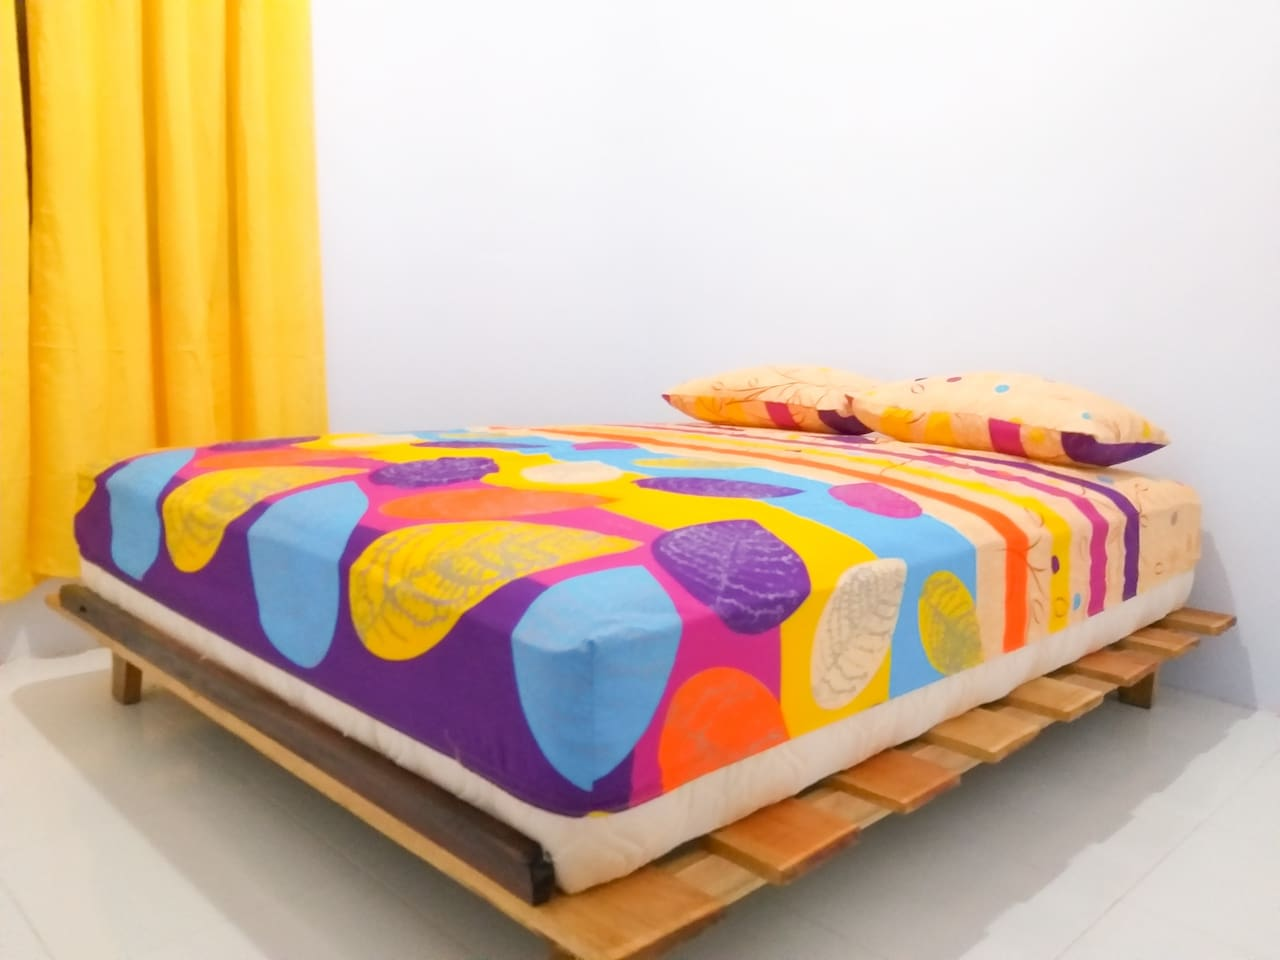 Queen Size and colorful sprai